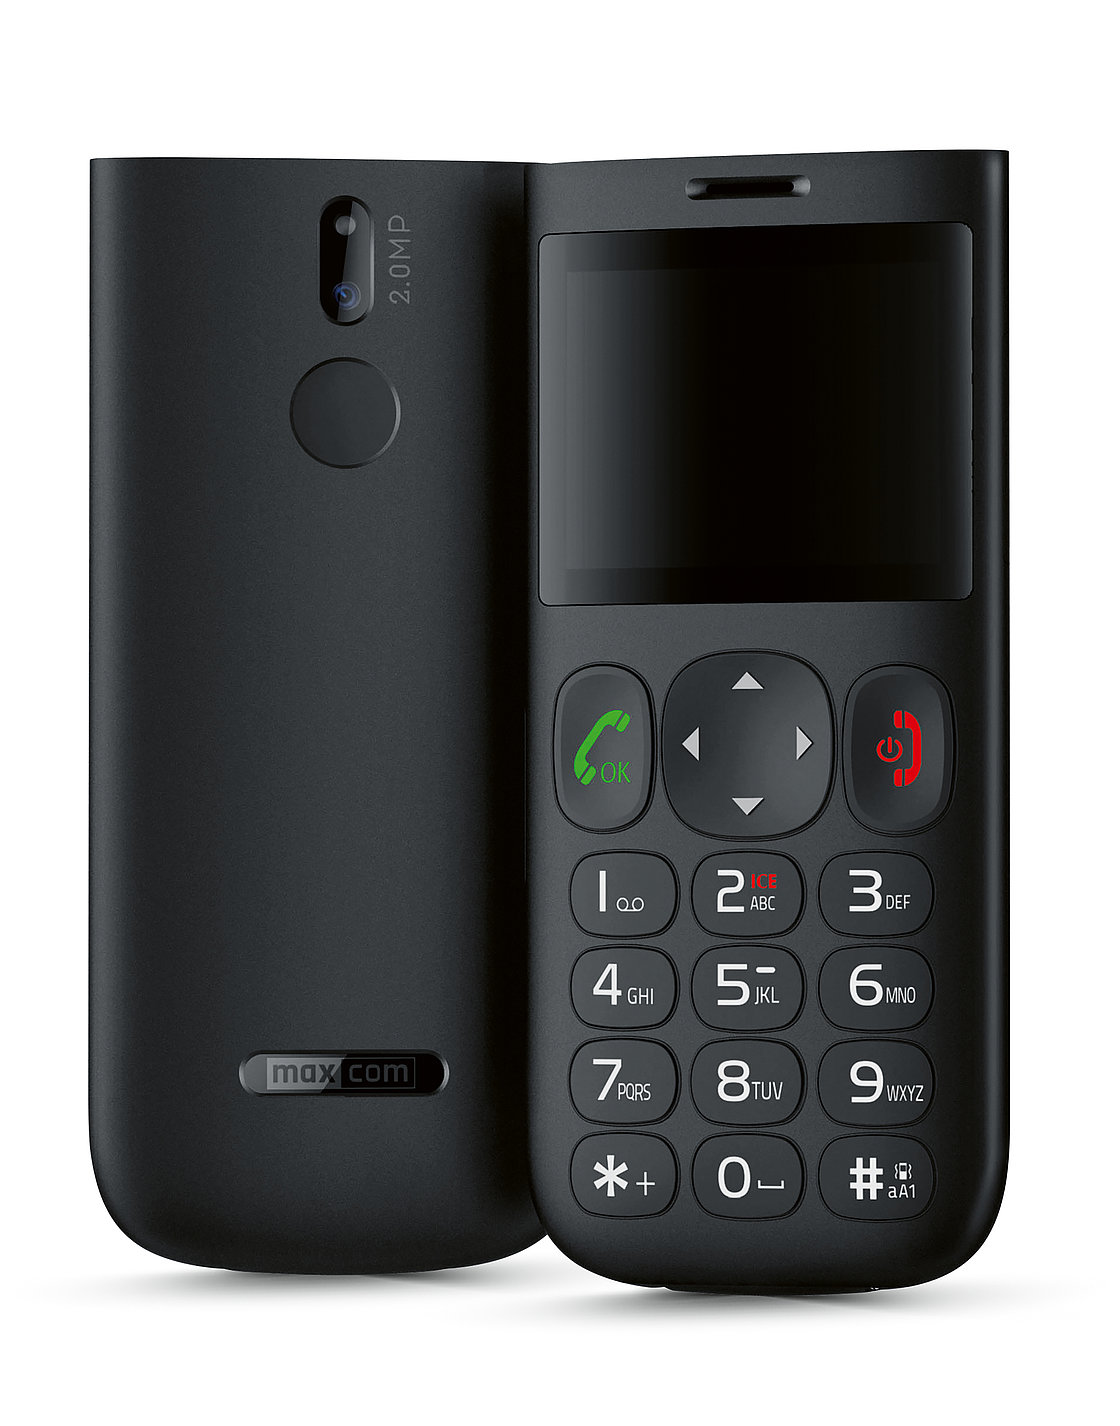 Chocolate MM750 Feature Phone | Red Dot Design Award